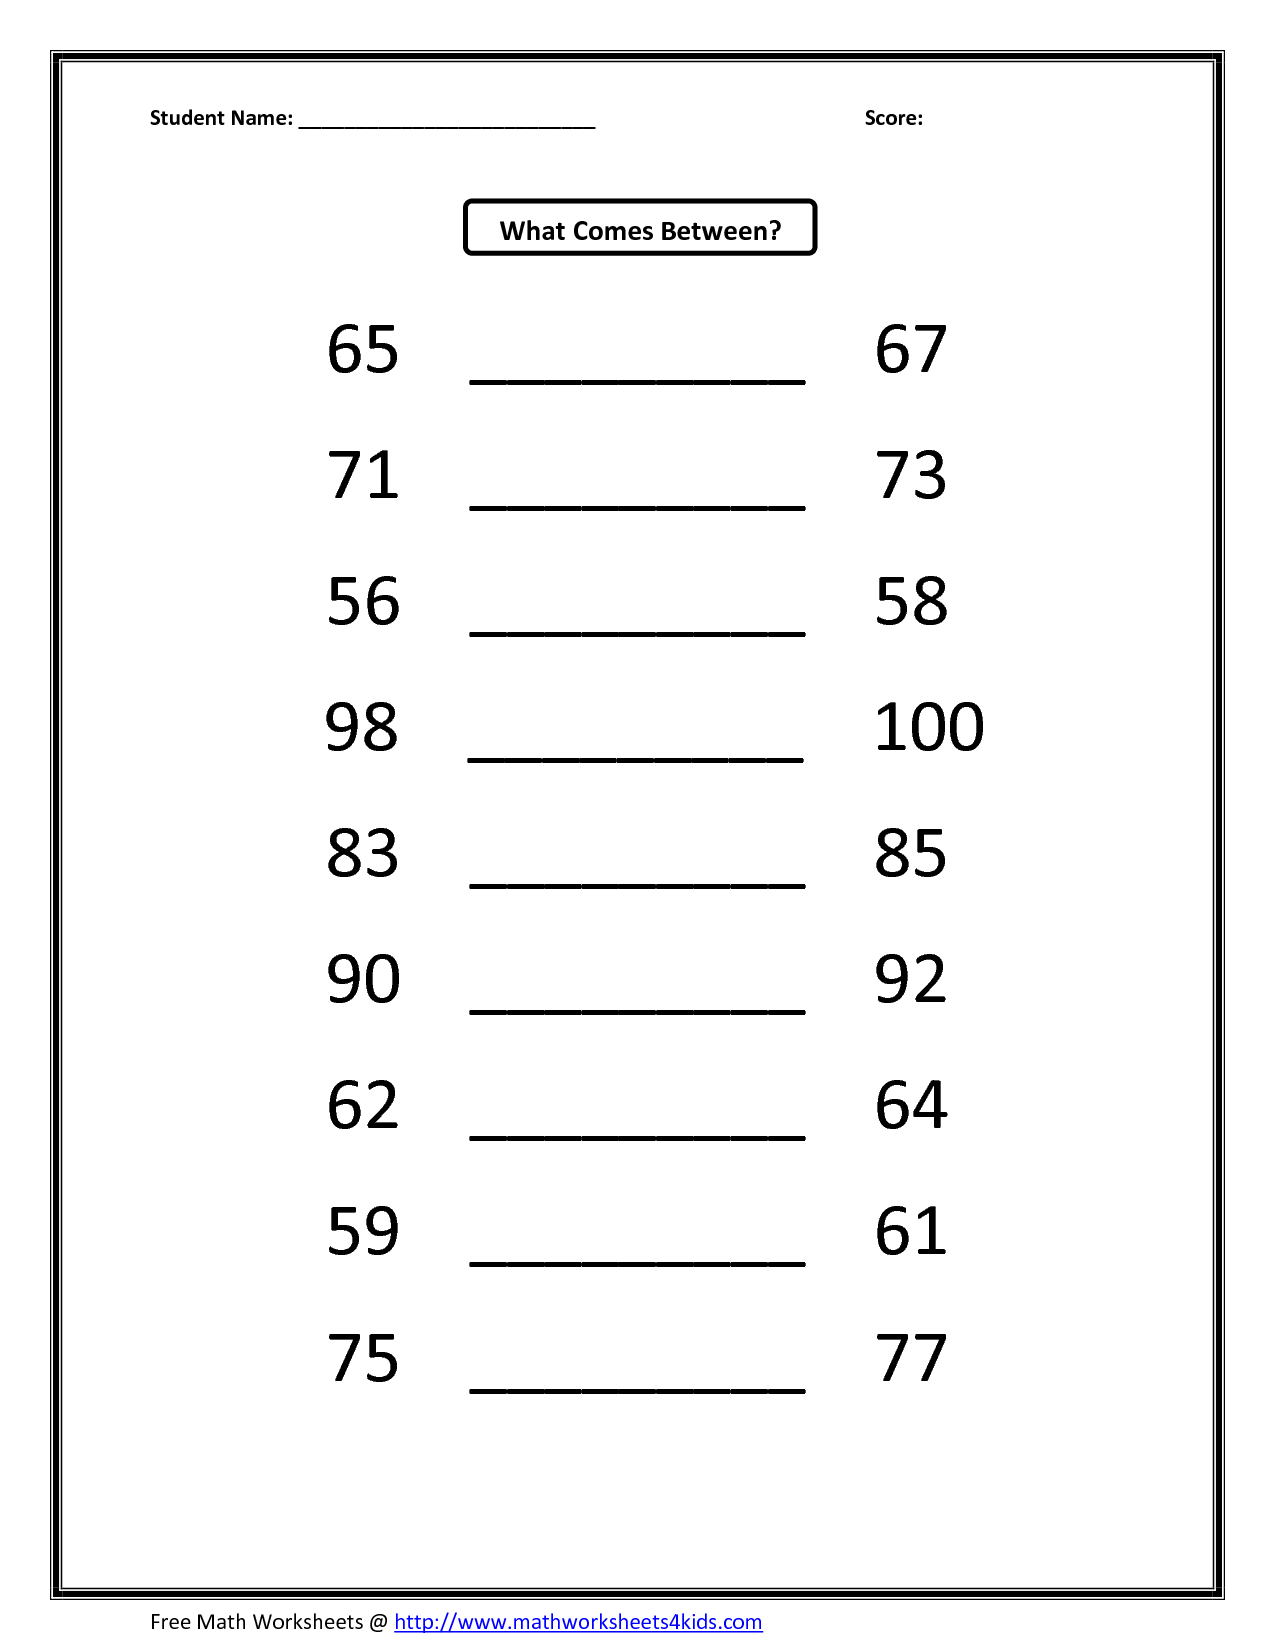 Number Of Square Root Worksheet